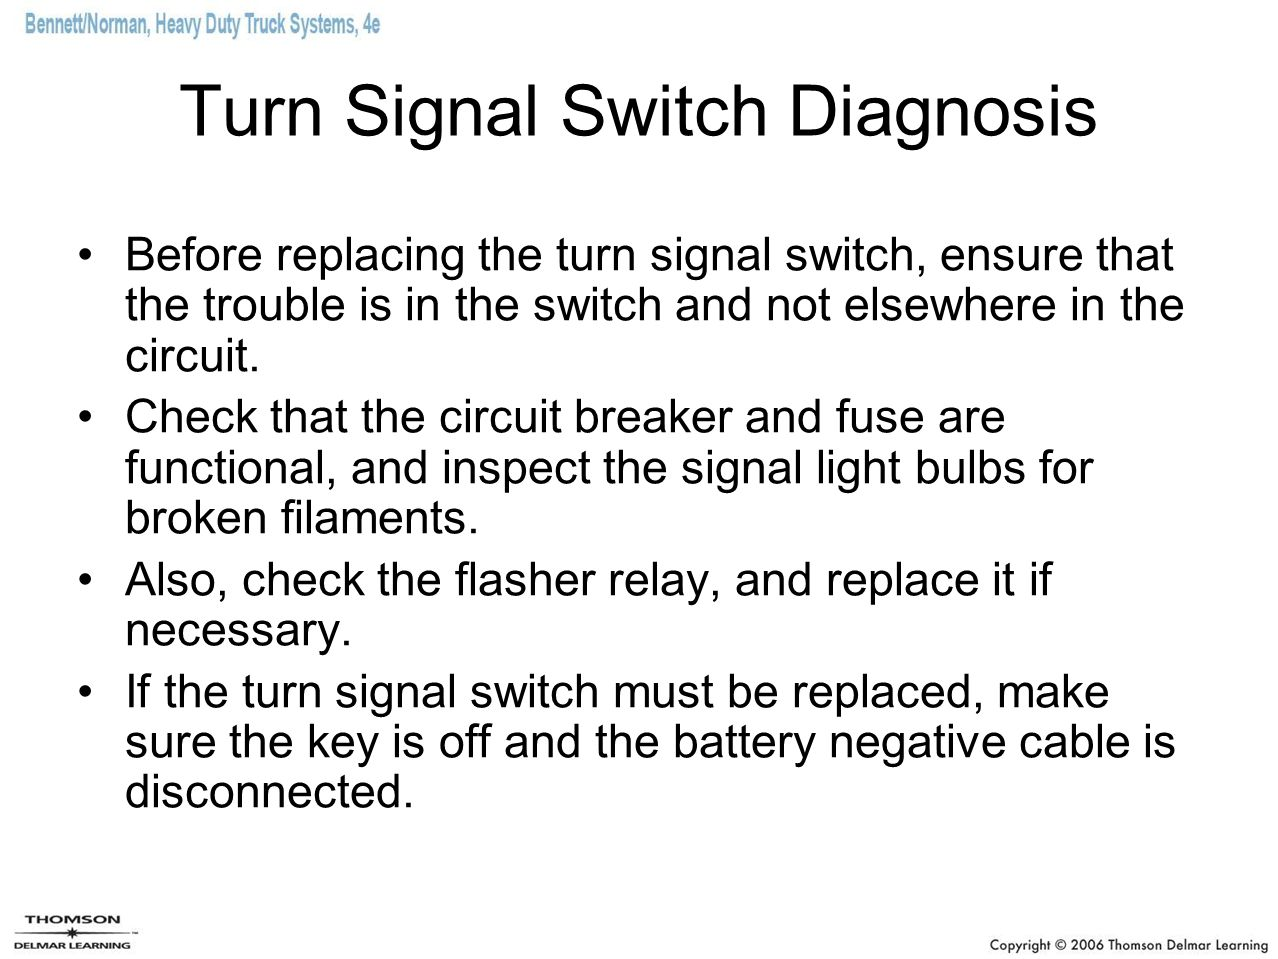 Turn Signal Switch Diagnosis